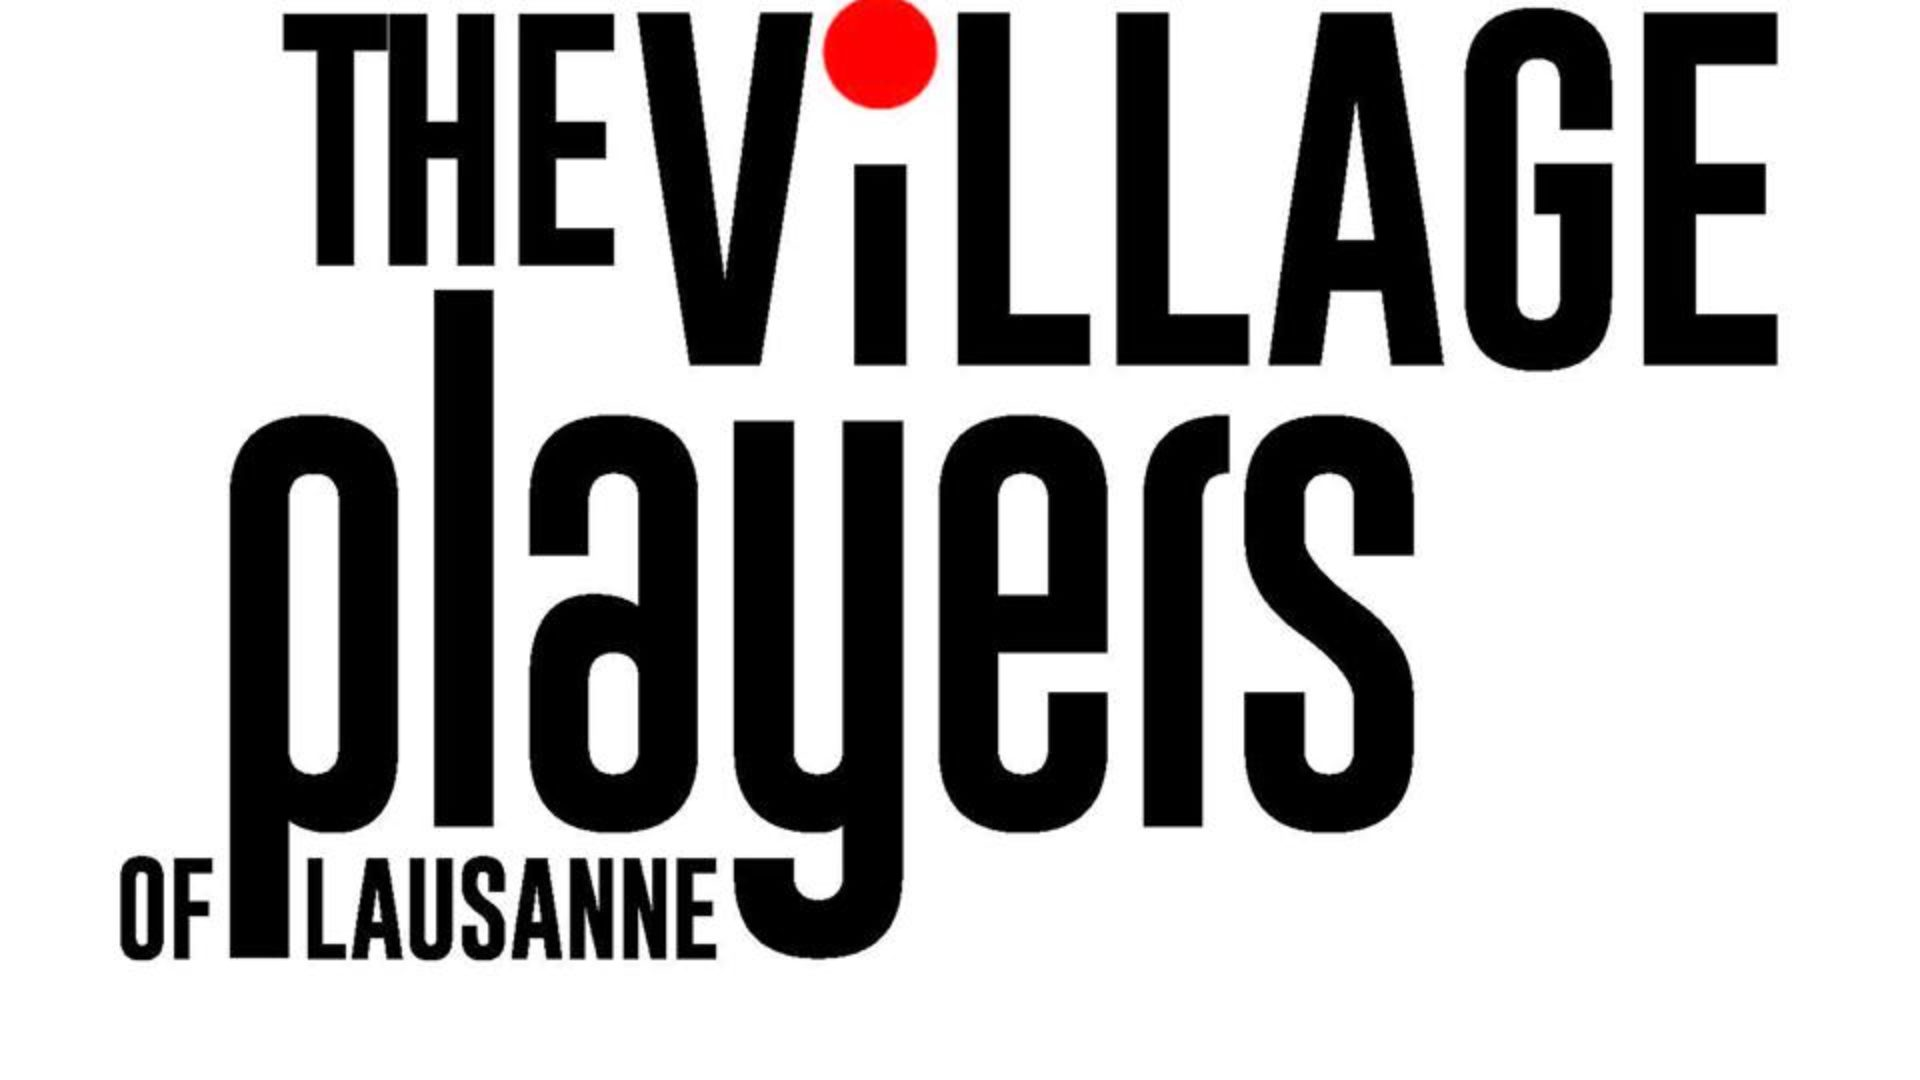 CPO_Village Players